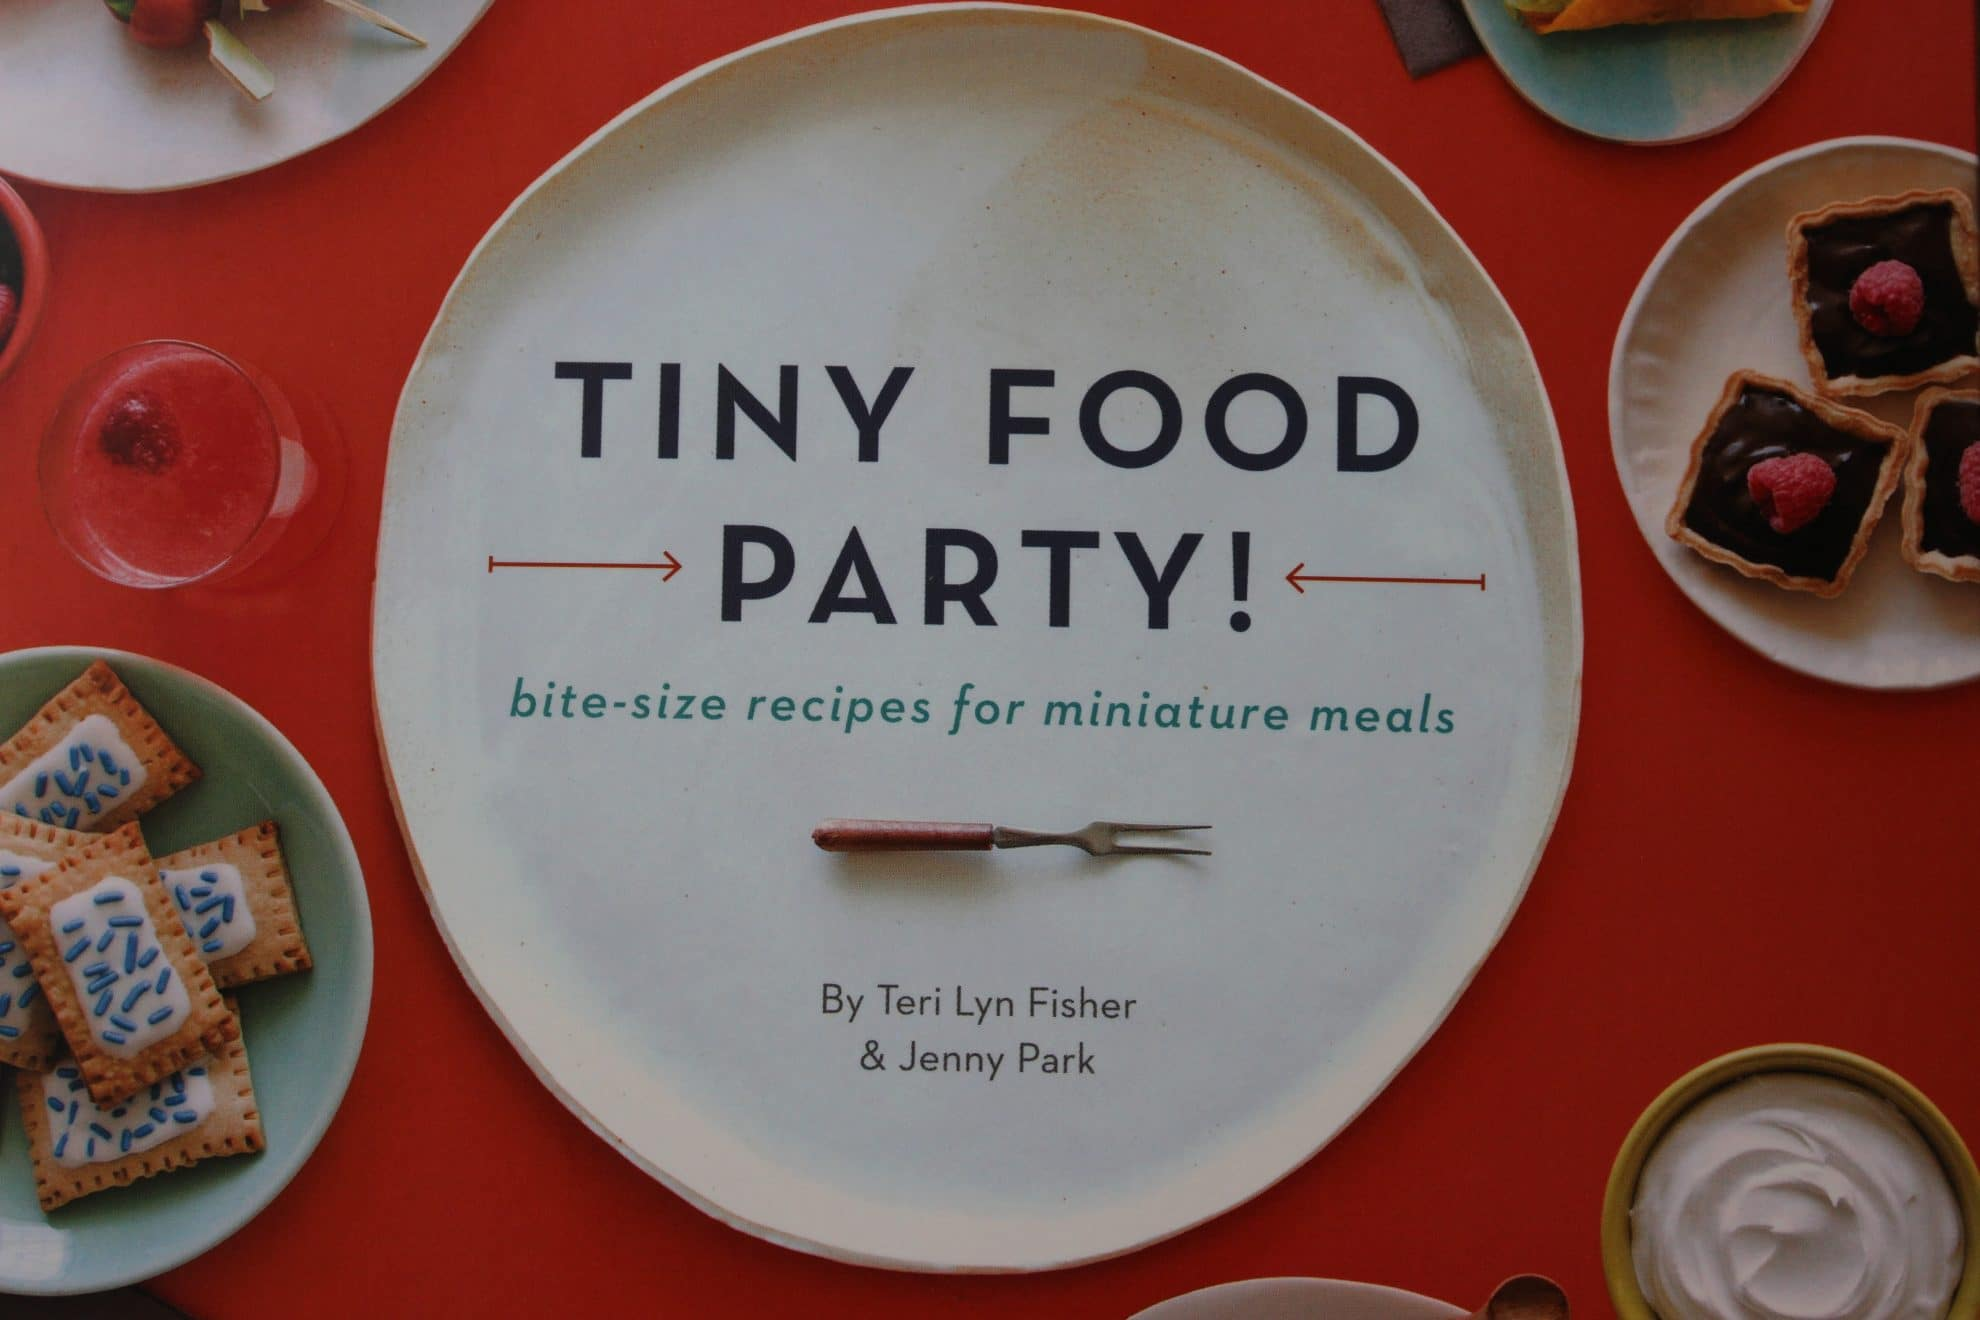 Reminder!!! One Week Left to Enter the Giveaway! A Book Review, Tiny Tacos and a Giveaway!!!